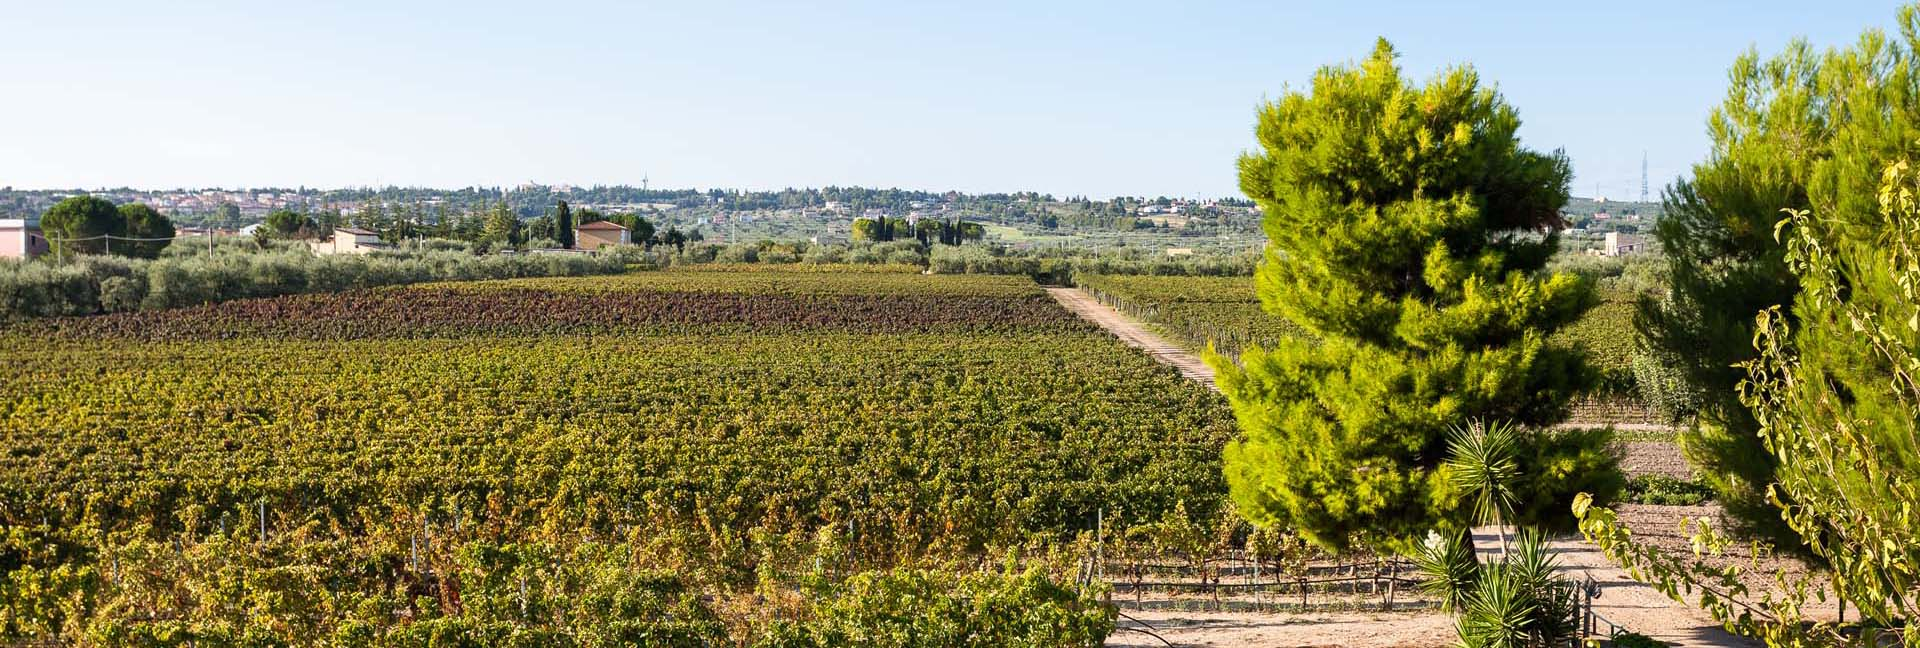 ORGANIC VINEYARDS AND WINERY FOR SALE IN APULIA, ITALY